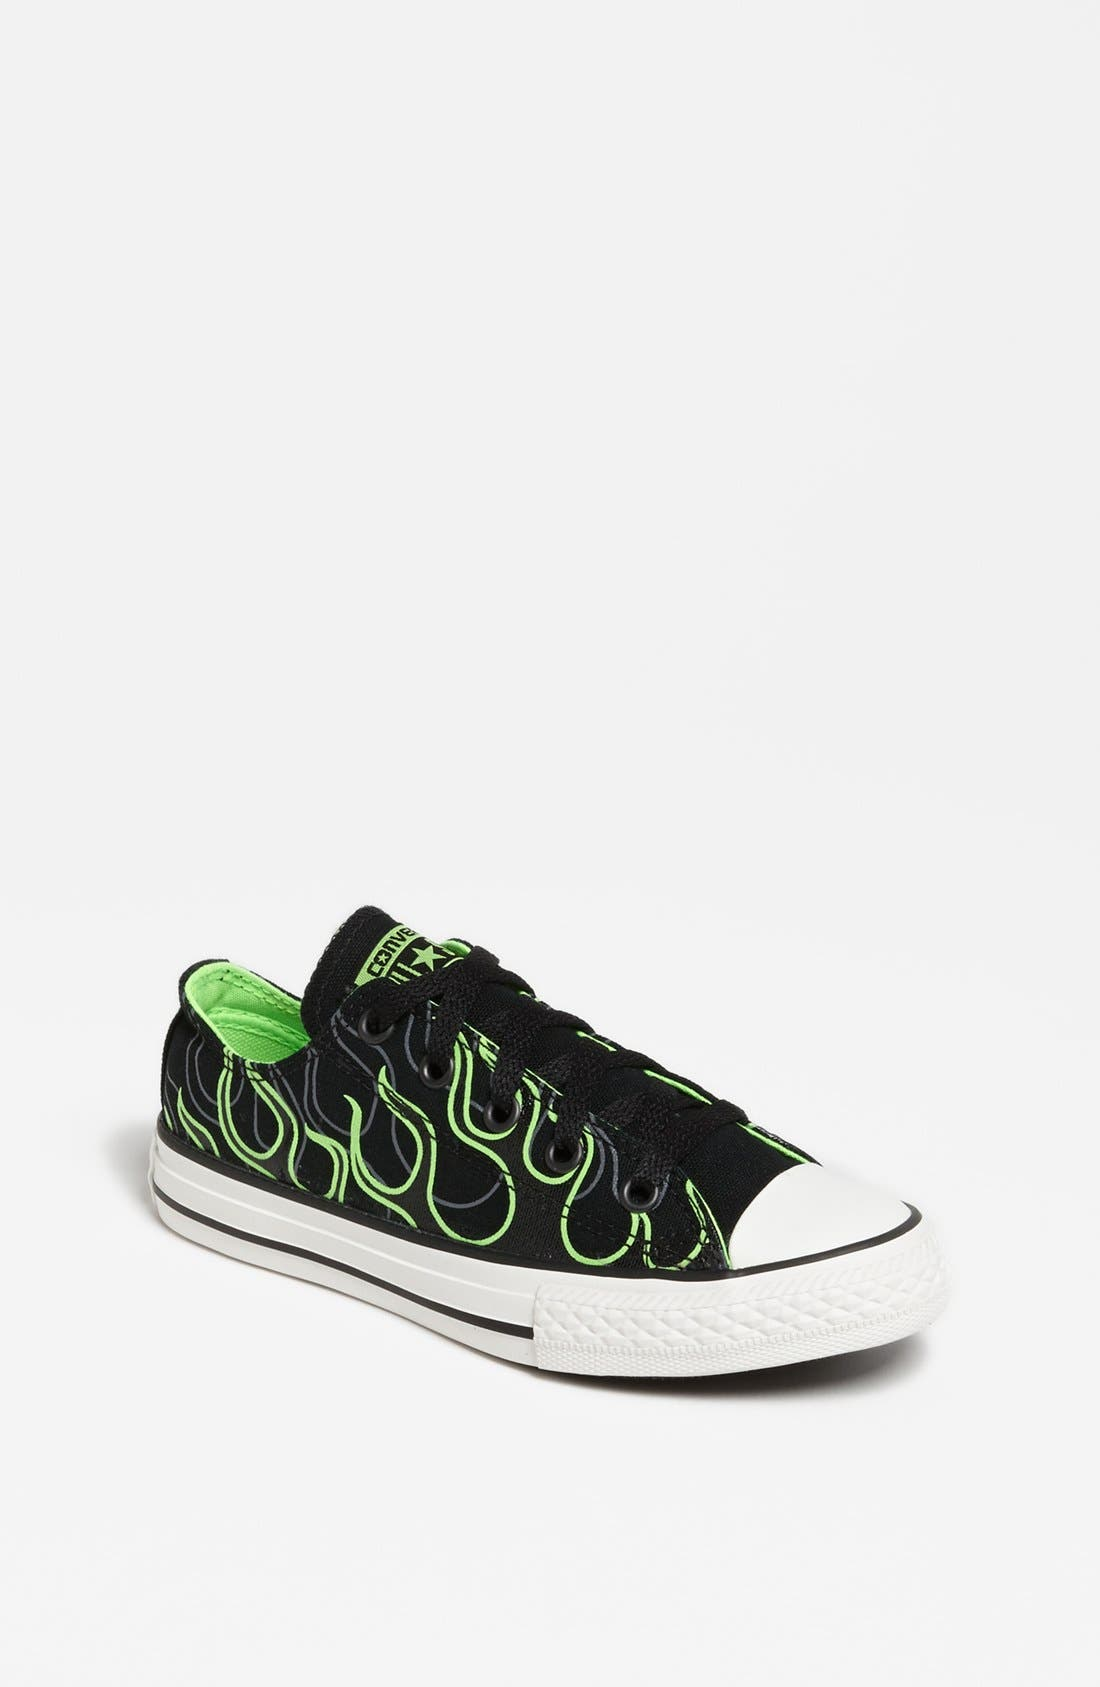 Alternate Image 1 Selected - Converse Chuck Taylor® All Star® 'Flames' Sneaker (Toddler, Little Kid & Big Kid)